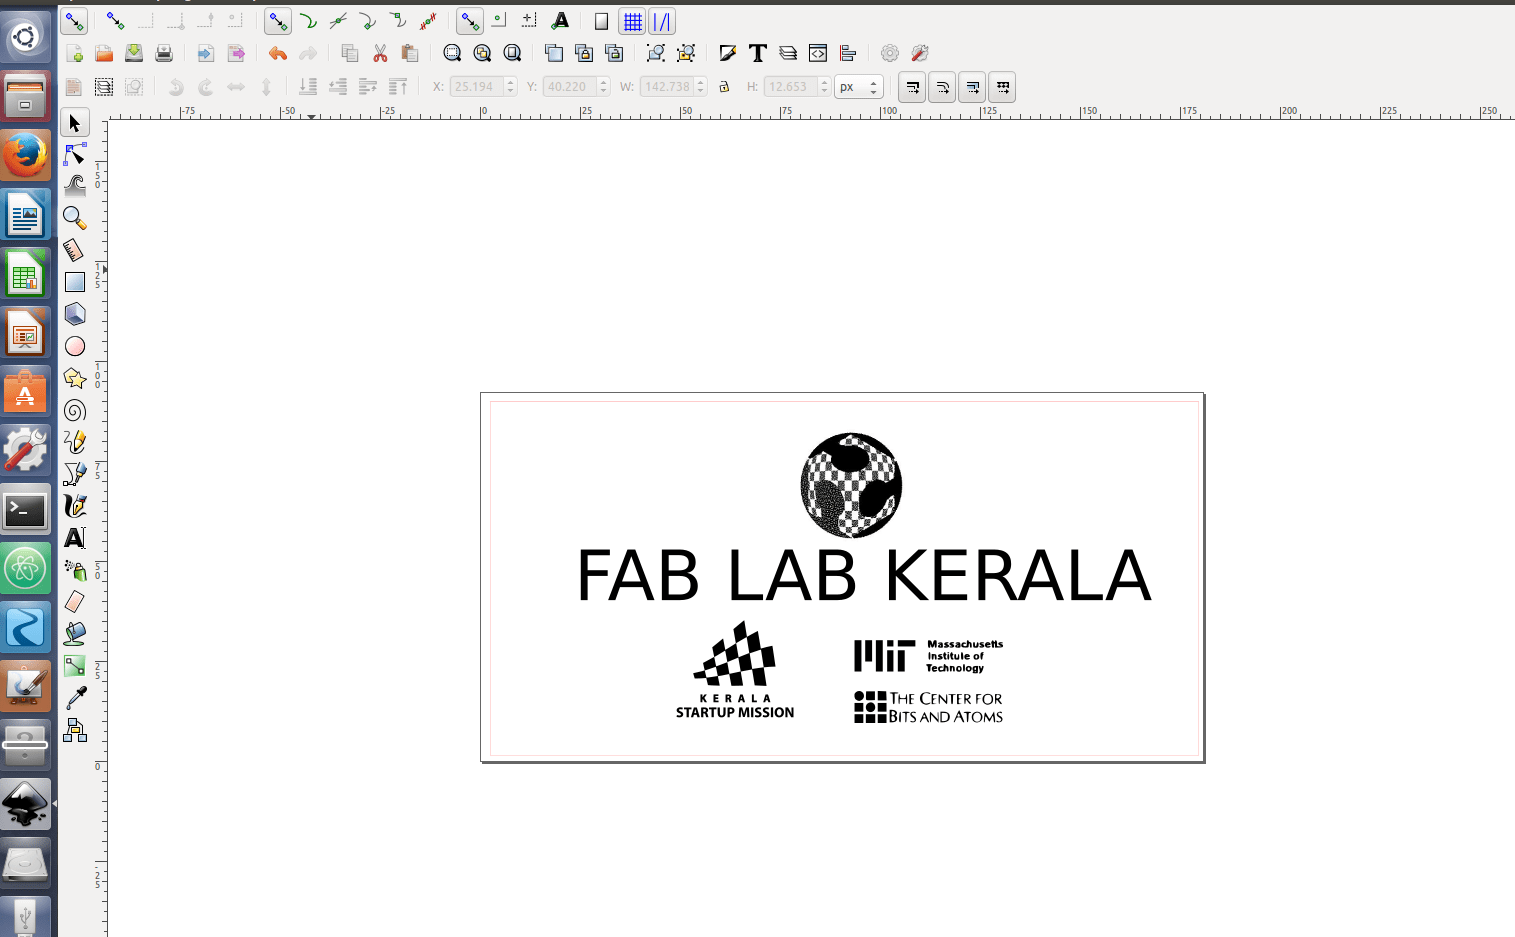 Ajiths Fab Diary 2017 Abstract Wireframe Globe On Circuit Board And Binary Code Background I Tried One More Design In Inkscapethis Time A 3d Vector Sphere Logo Referred From Youtube Tutorial Followed The Same Steps That